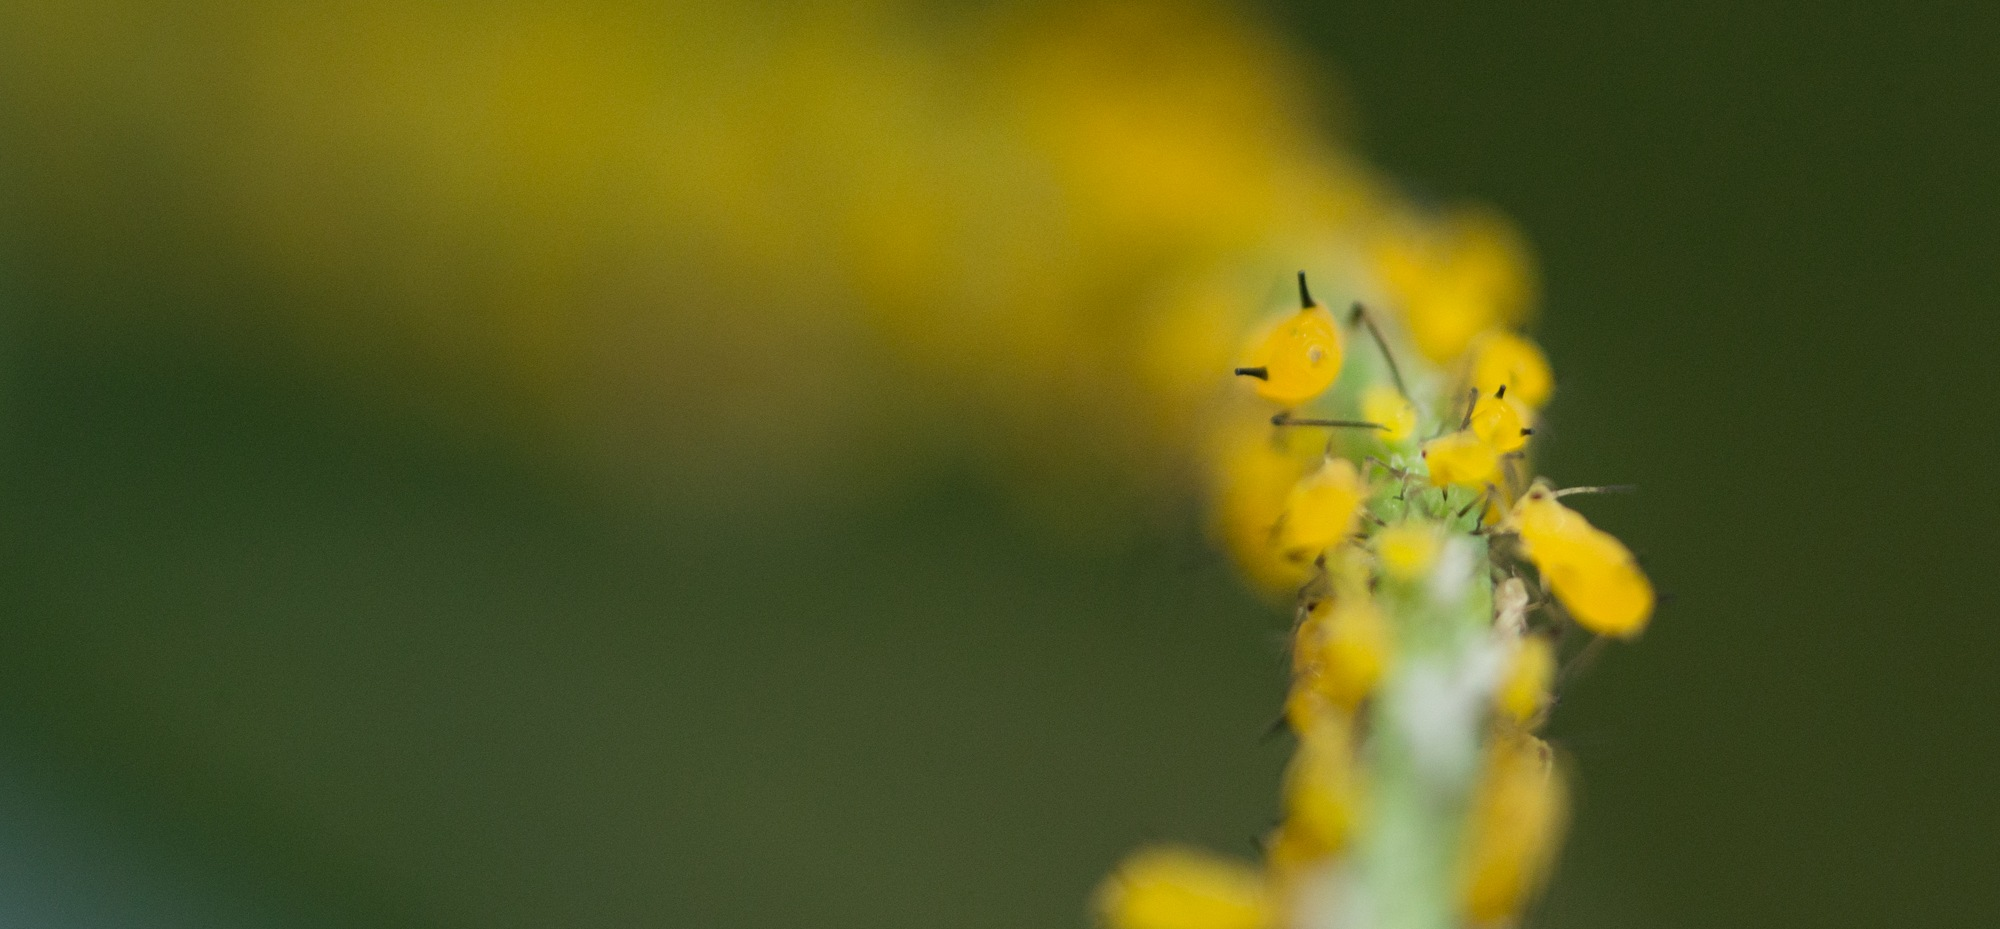 aphids on a stem by Lawrence Splitter